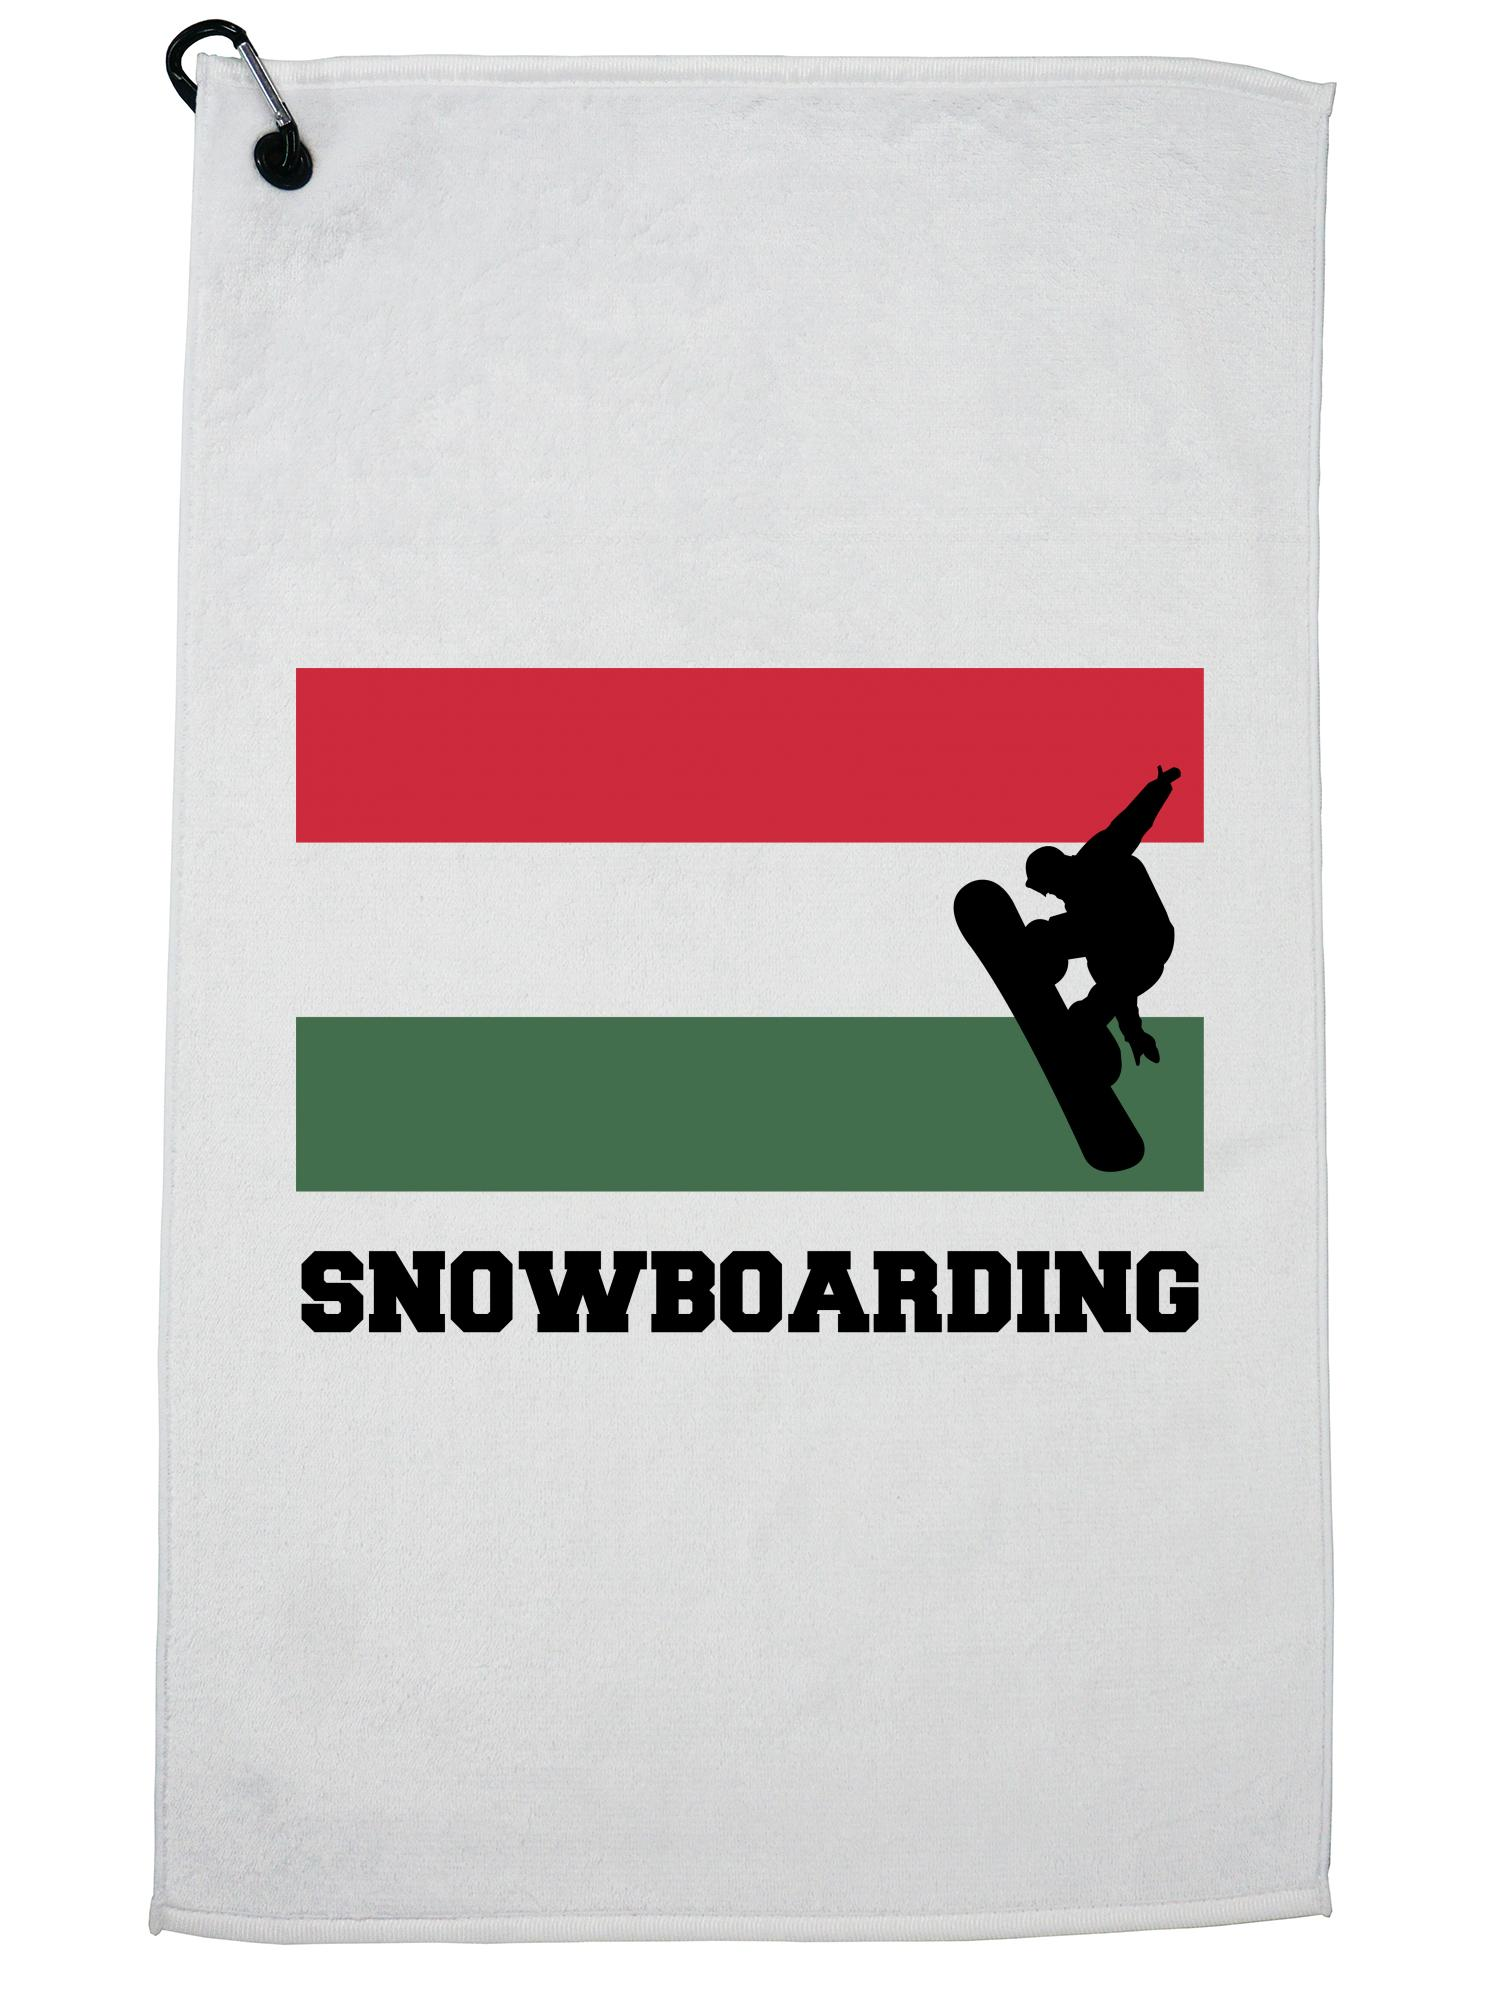 Hungary Olympic Snowboarding Flag Silhouette Golf Towel with Carabiner Clip by Hollywood Thread